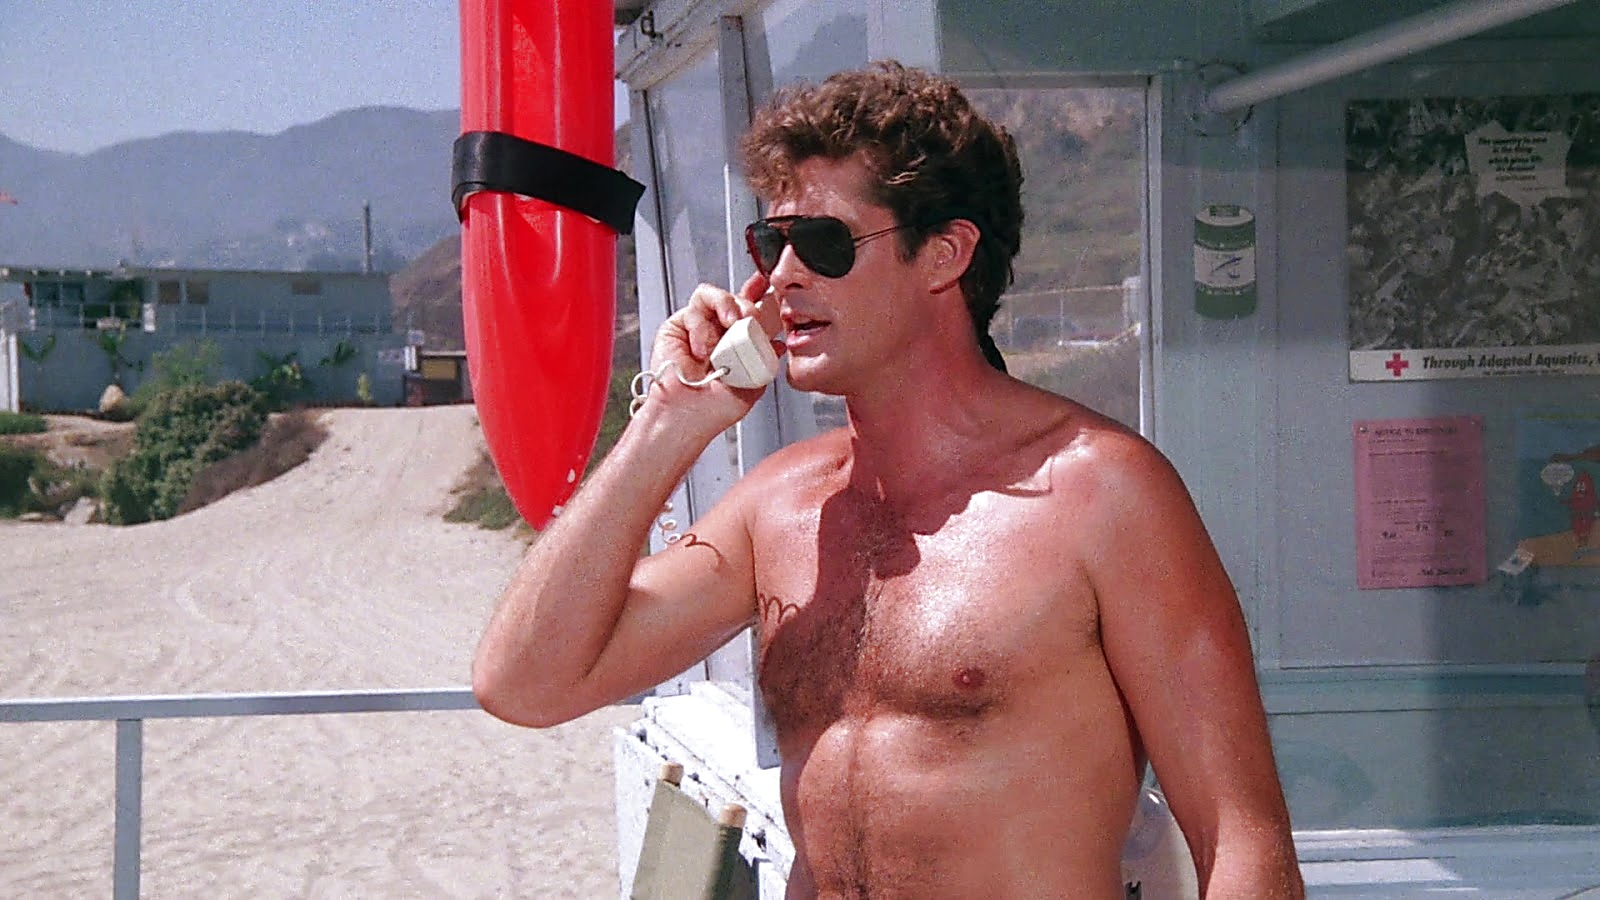 David Hasselhoff sexy shirtless scene May 26, 2019, 12pm